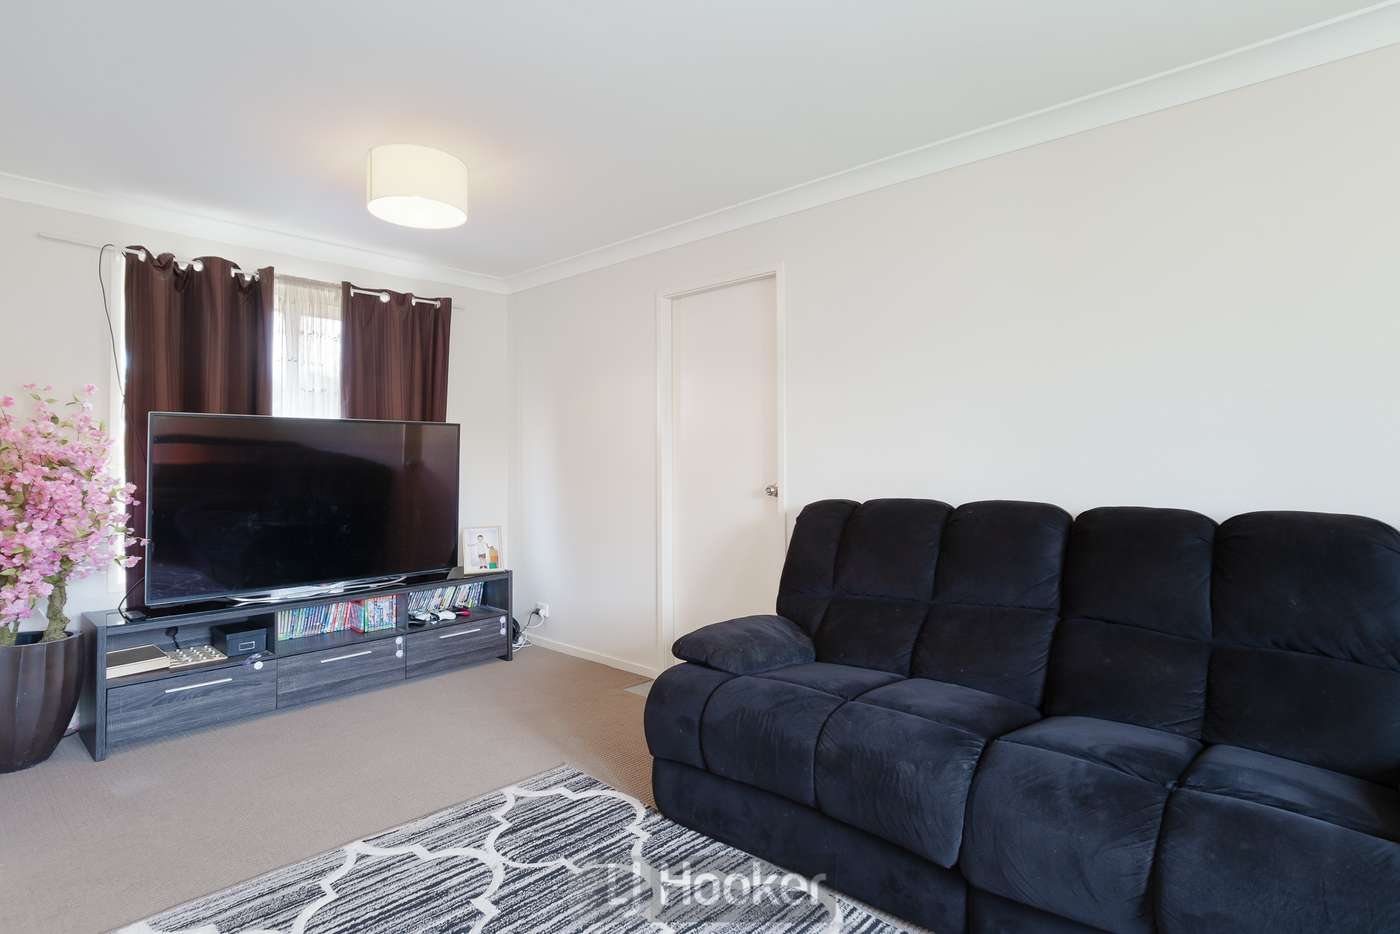 Seventh view of Homely house listing, 61 Rosemary Row, Rathmines NSW 2283